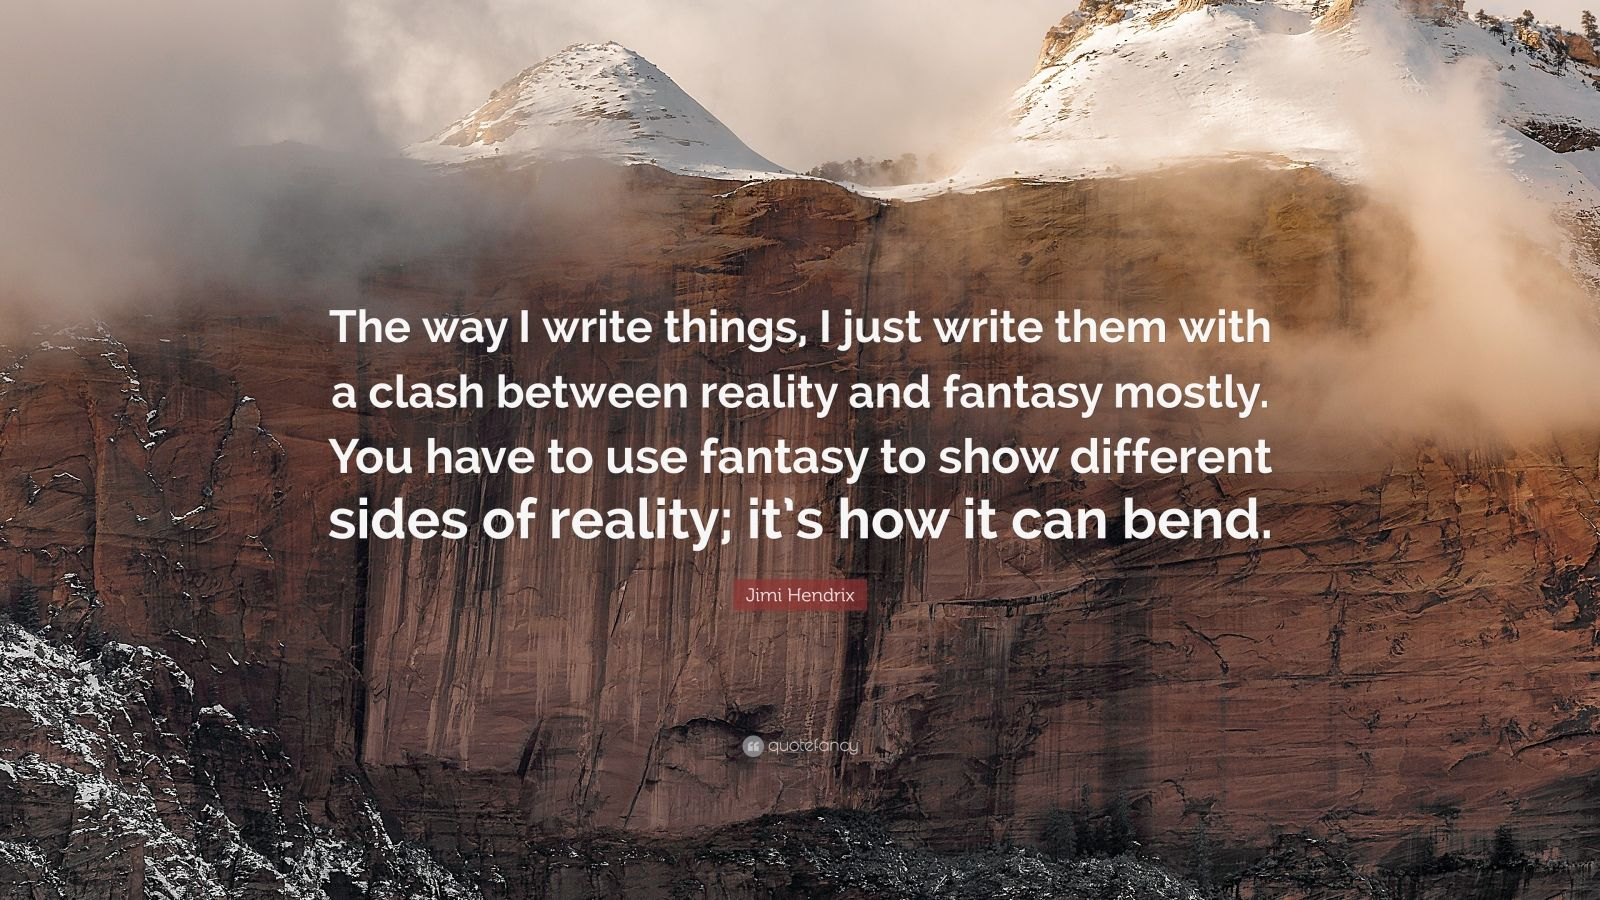 """Jimi Hendrix Quote: """"The way I write things, I just write them with a clash between reality and fantasy mostly. You have to use fantasy to show different sides of reality; it's how it can bend."""""""